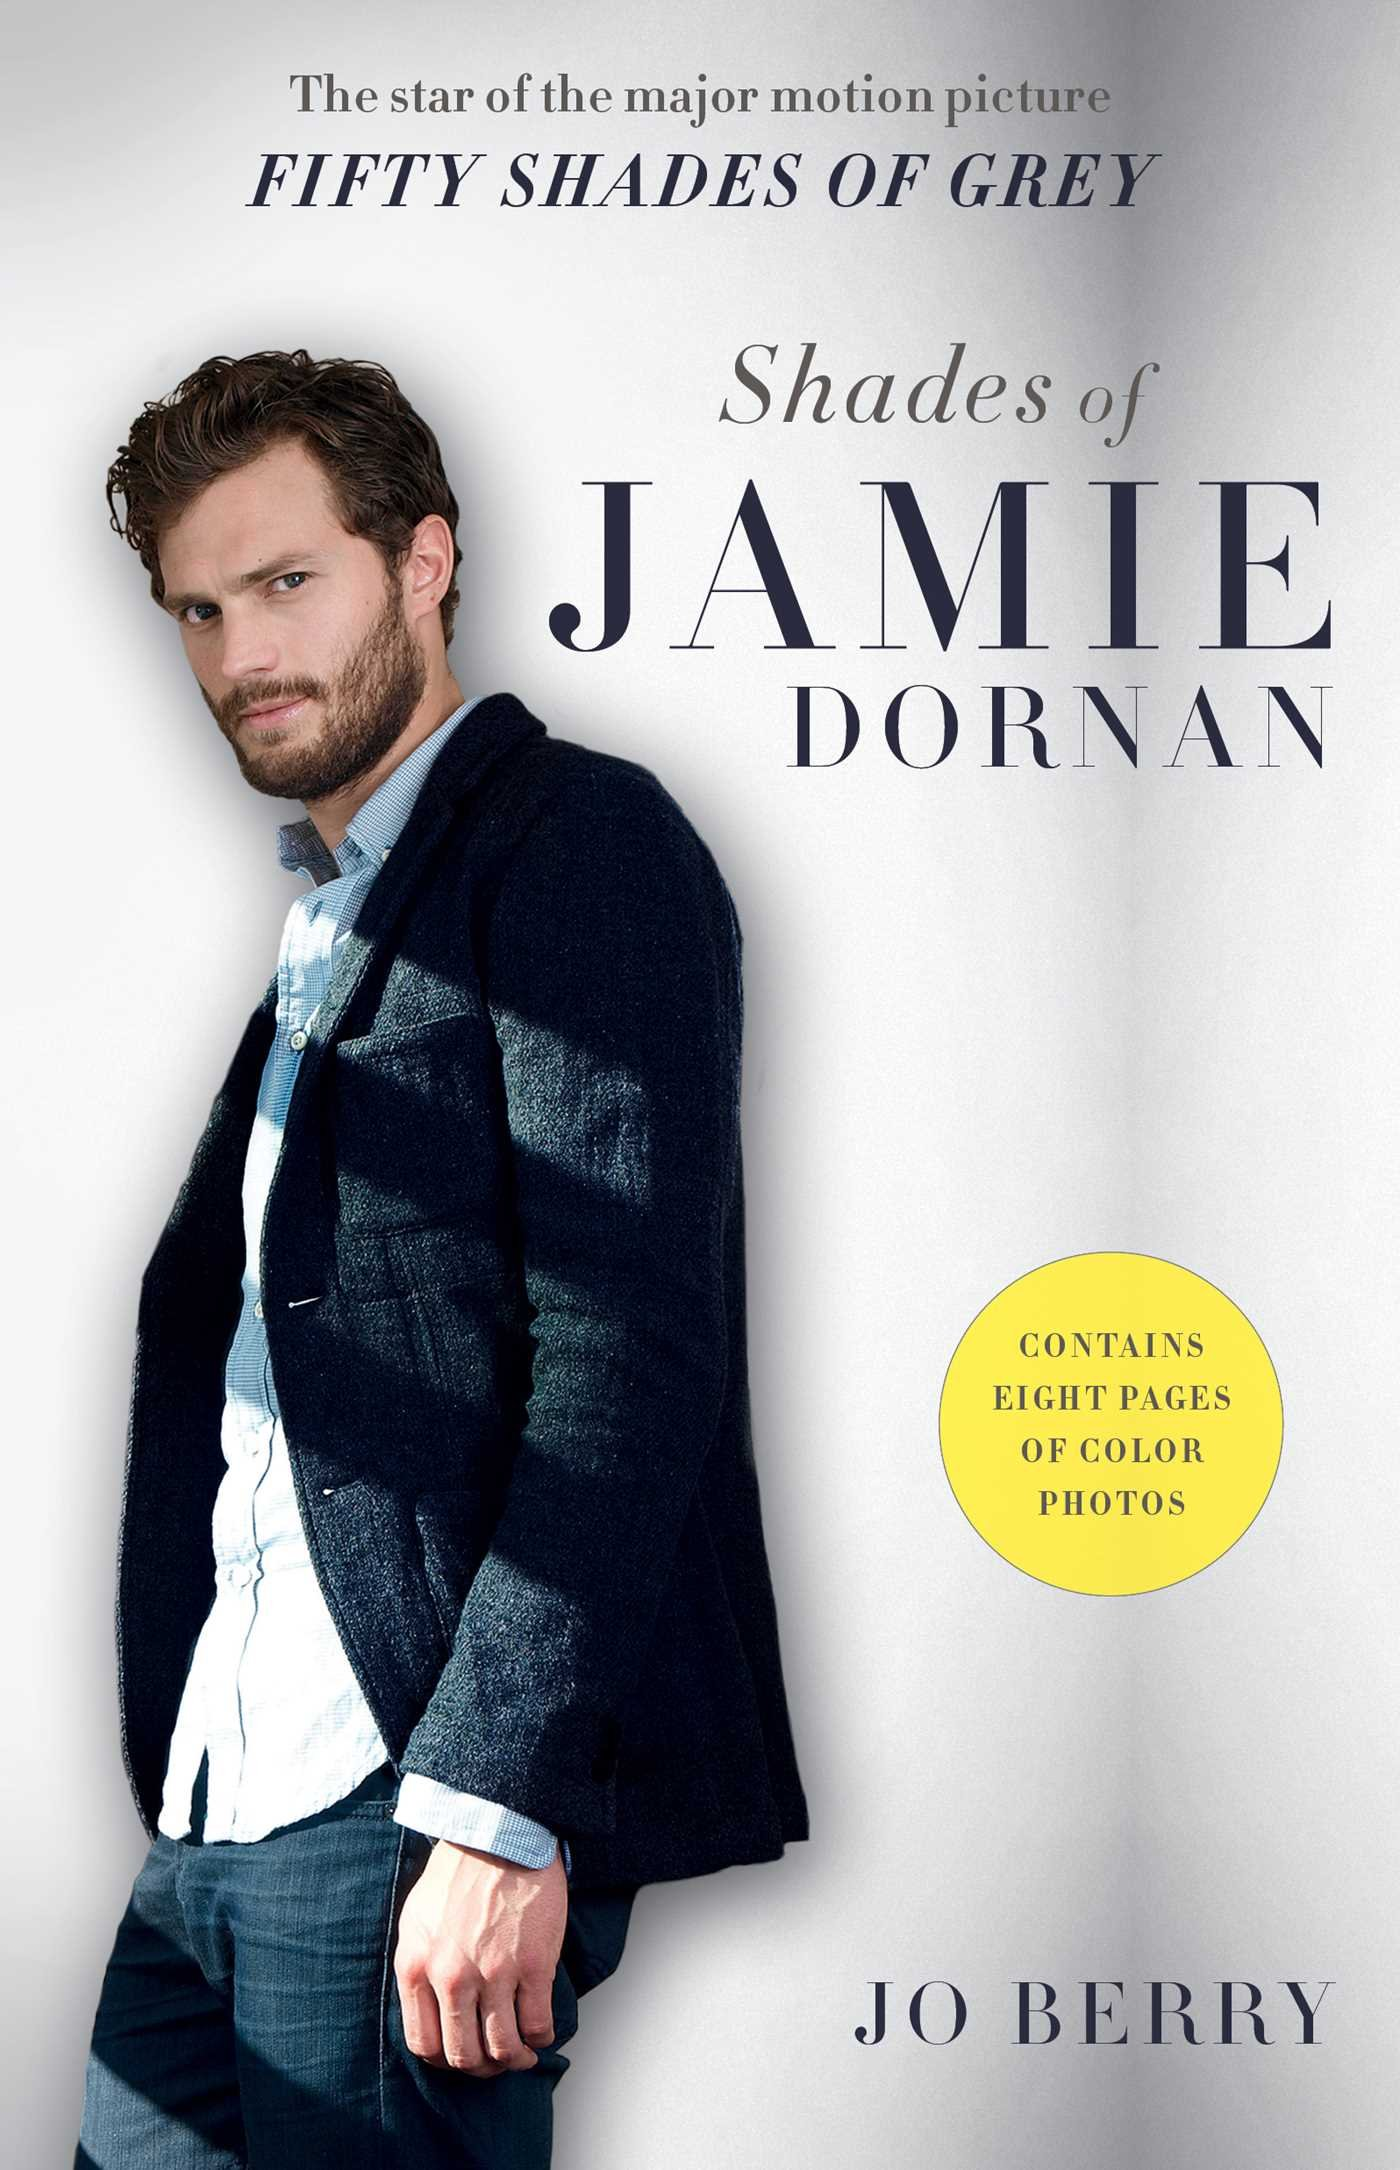 shades of jamie dornan the star of the major motion picture fifty shades of jamie dornan the star of the major motion picture fifty shades of grey jo berry 9781501107887 amazon com books